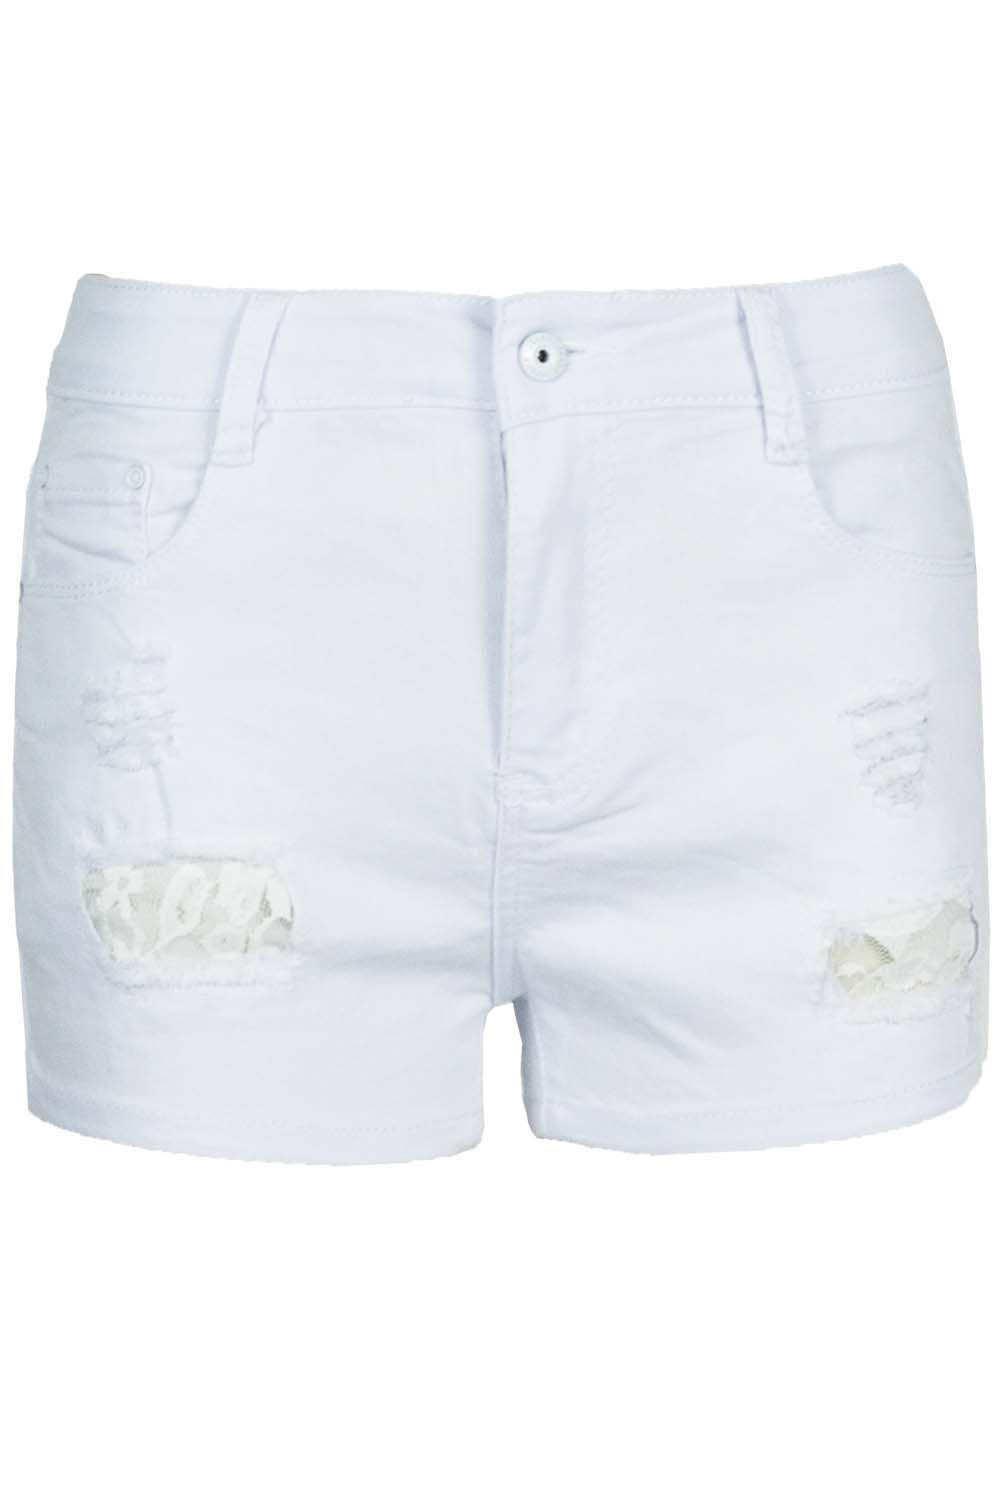 Ladies-Buttons-Floral-Lace-RIPPED-DISTRESSED-Womens-Denim-Mini-Shorts-Hot-Pants